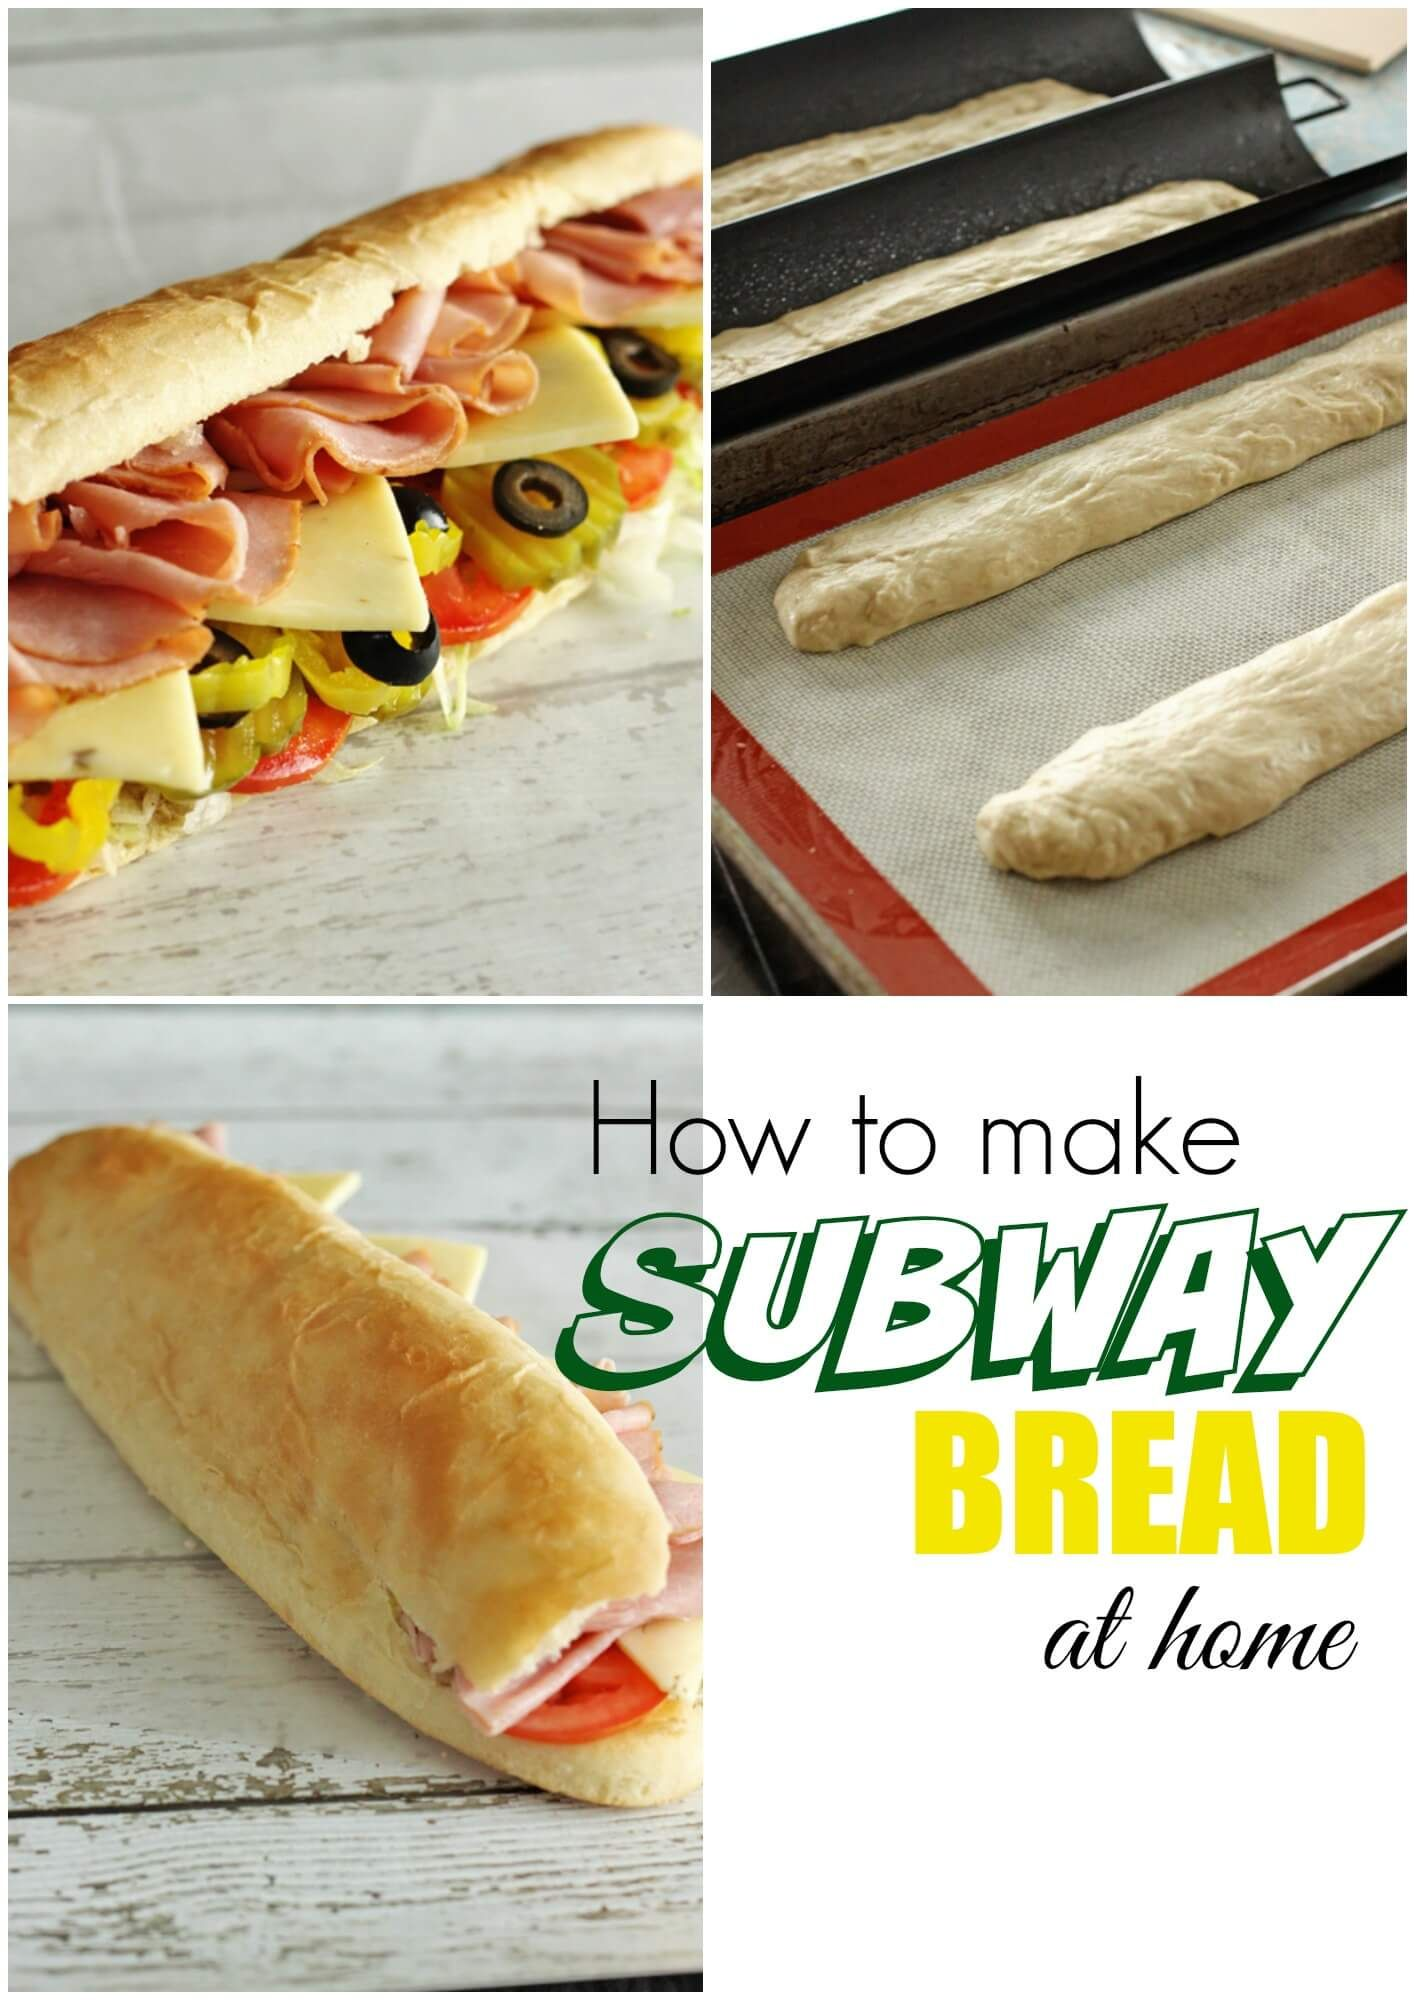 how to make subway bread at home breads pinterest subway bread